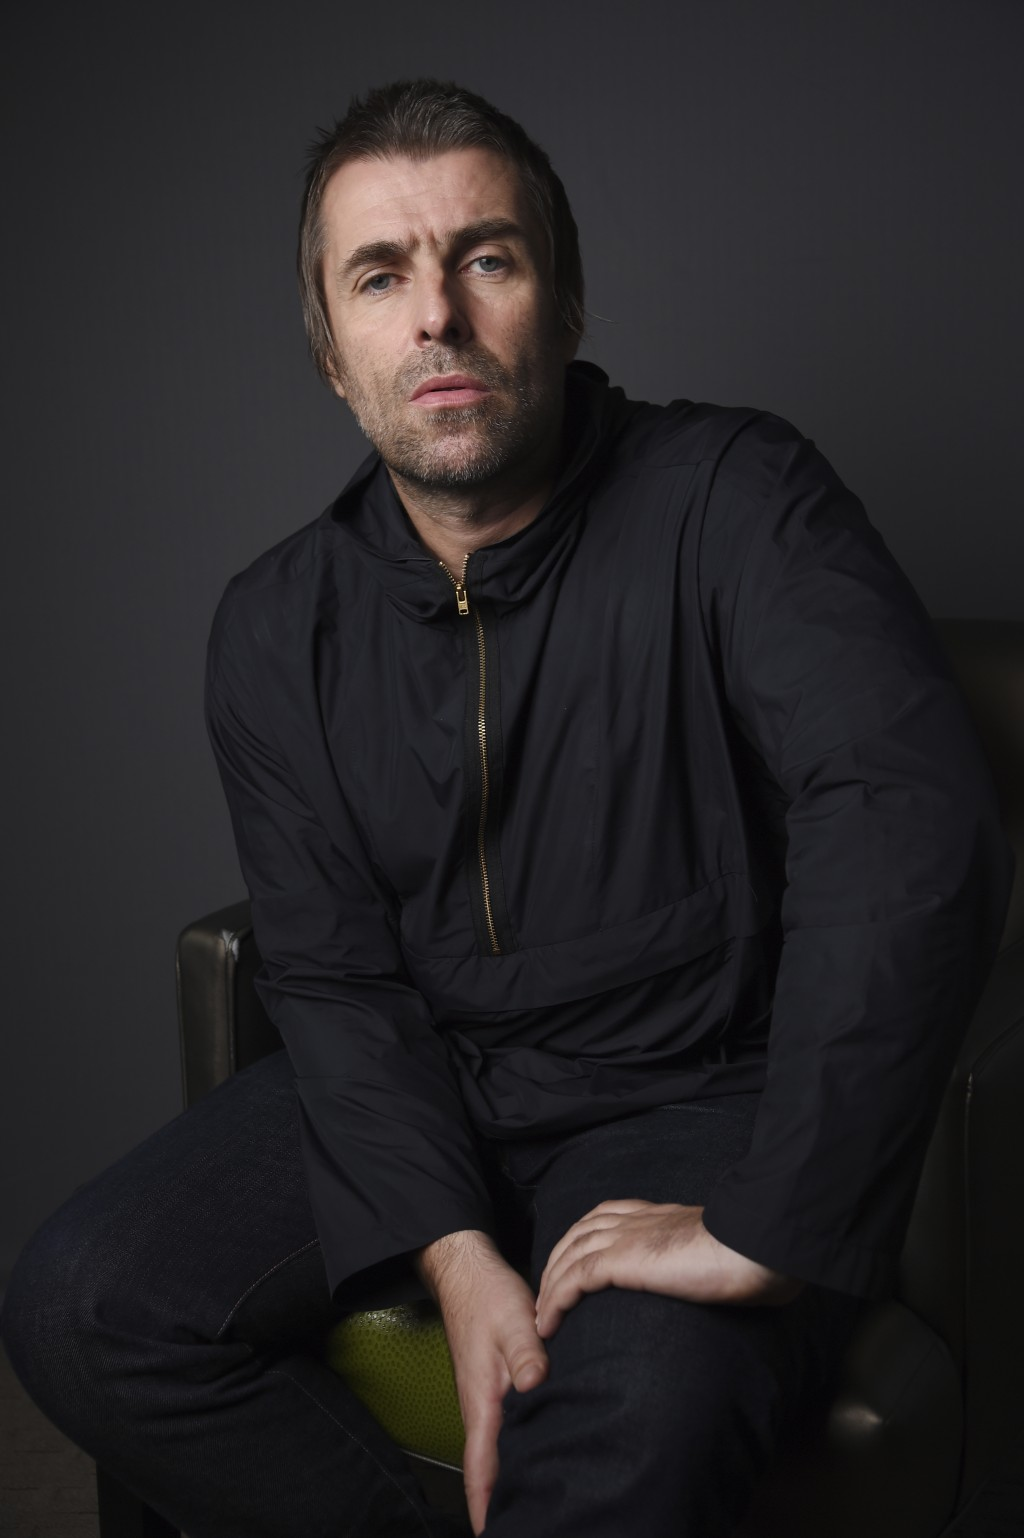 This Oct. 15, 2019 photo shows singer Liam Gallagher posing for a portrait at the Sunset Marquis Hotel in West Hollywood, Calif., to promote his sopho...